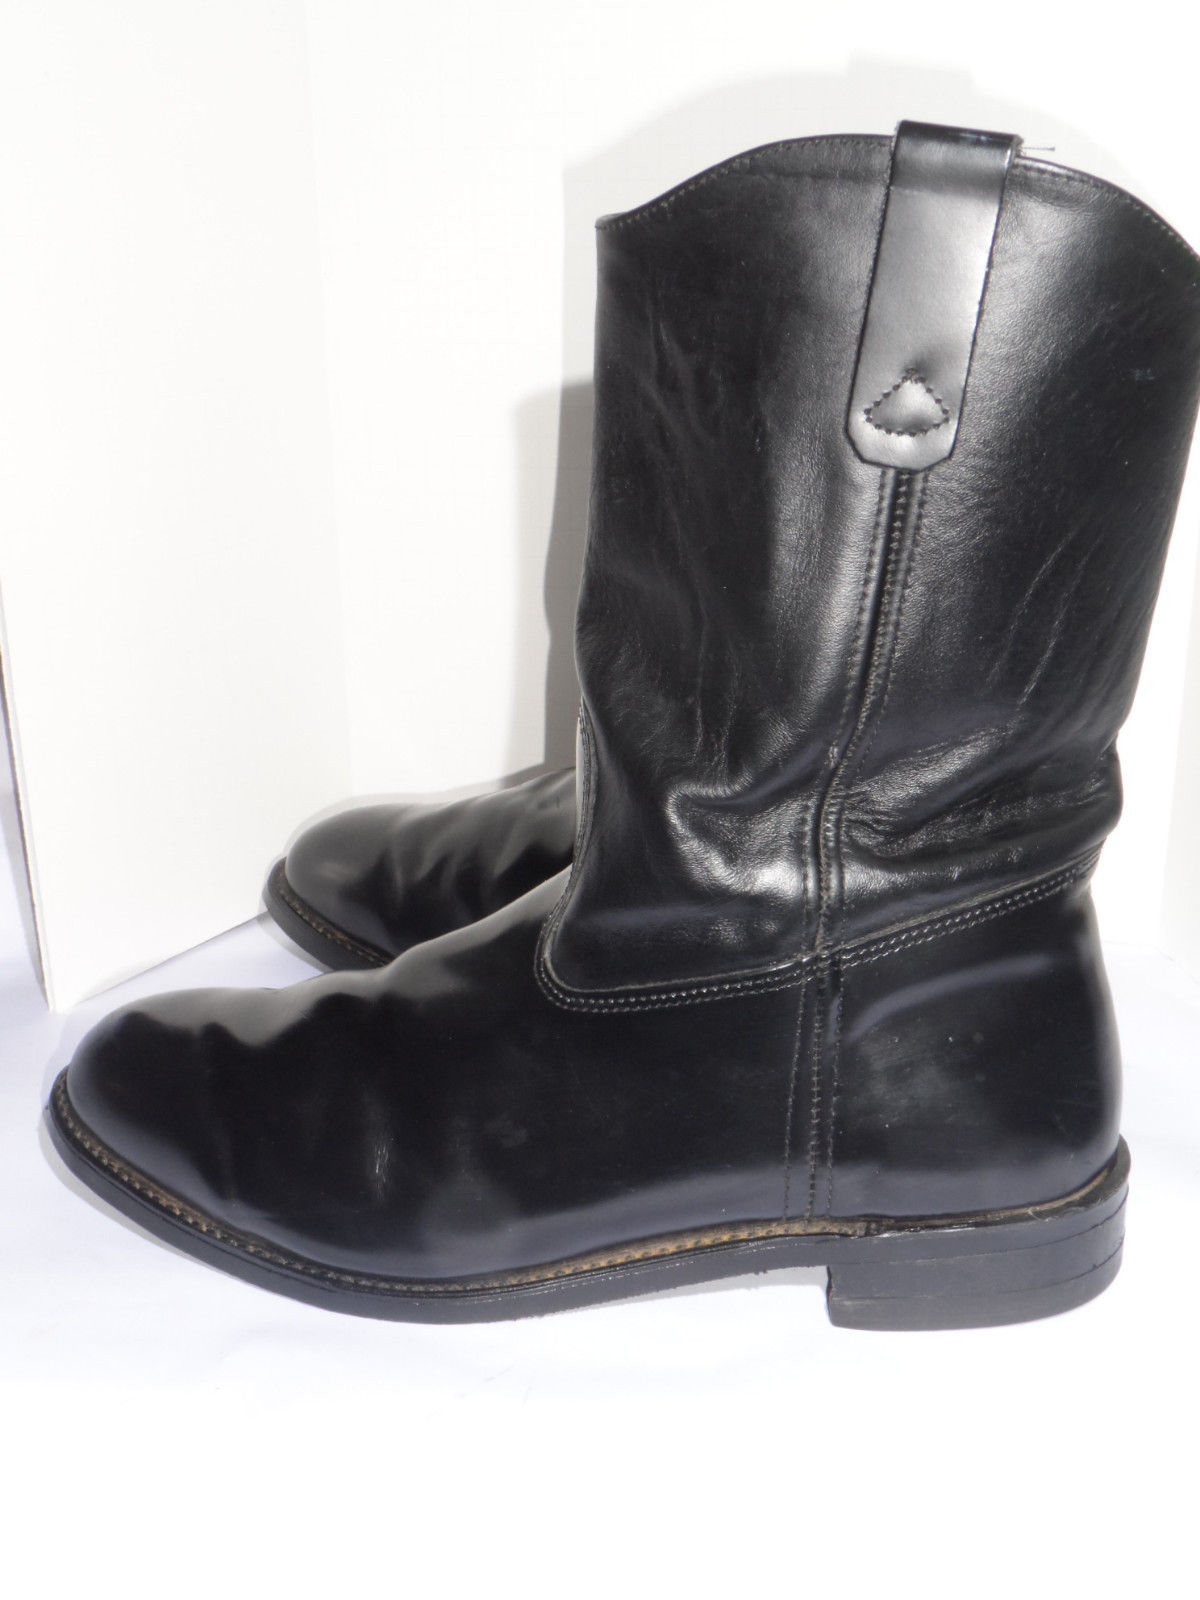 s black motorcycle boots classic vintage apparel